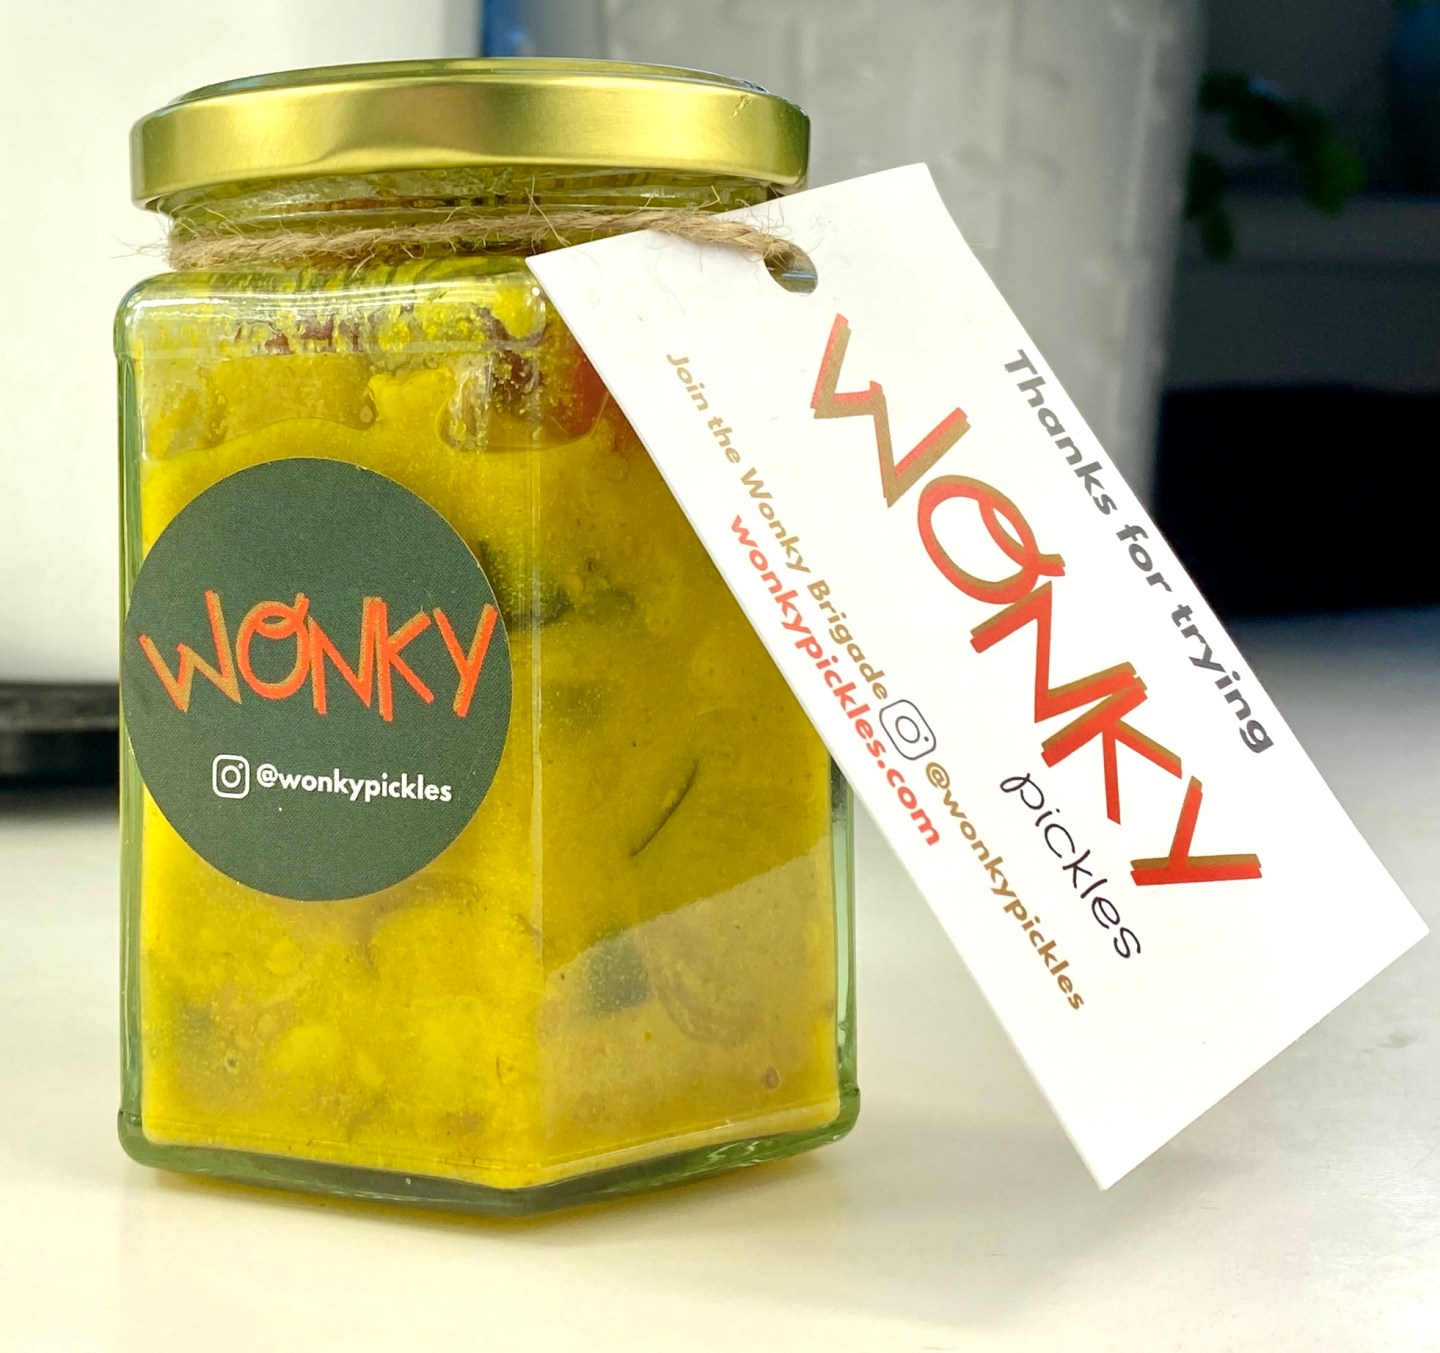 Wonky pickles piccalilli